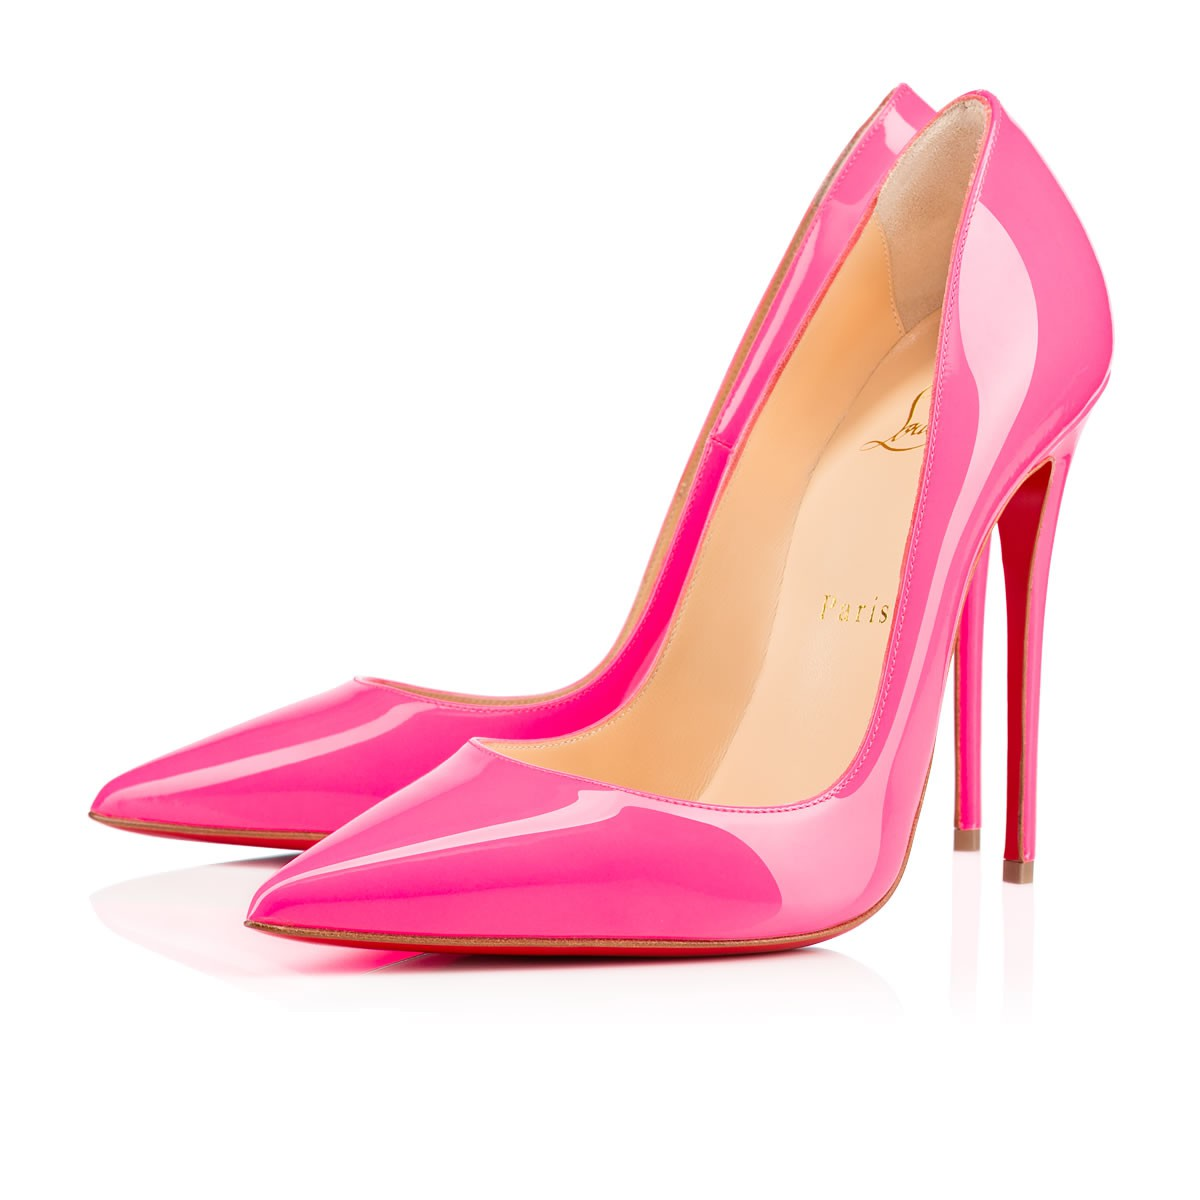 christian louboutin so kate patent my high heelsmy high heels. Black Bedroom Furniture Sets. Home Design Ideas